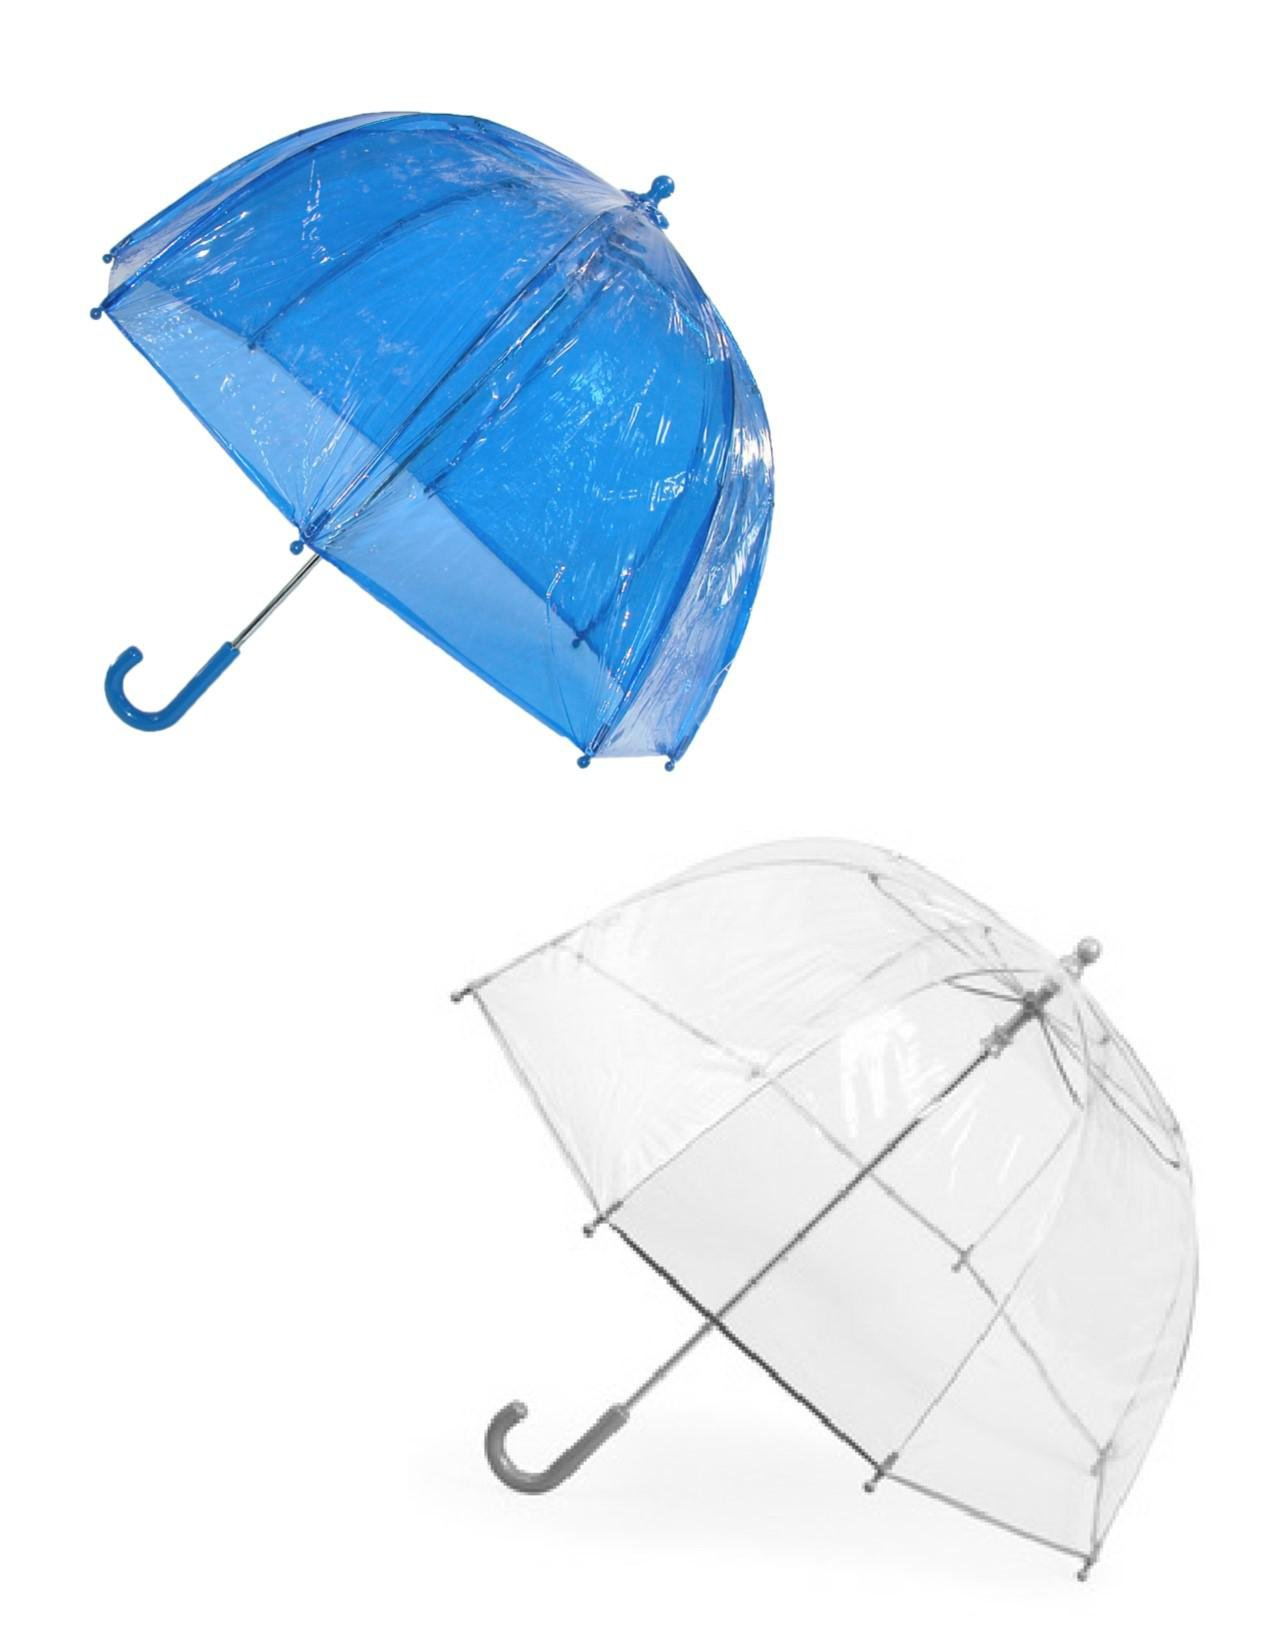 totes ISOTONER Kids Clear Bubble Umbrella (Pack of 2), Blue/Clear by totes